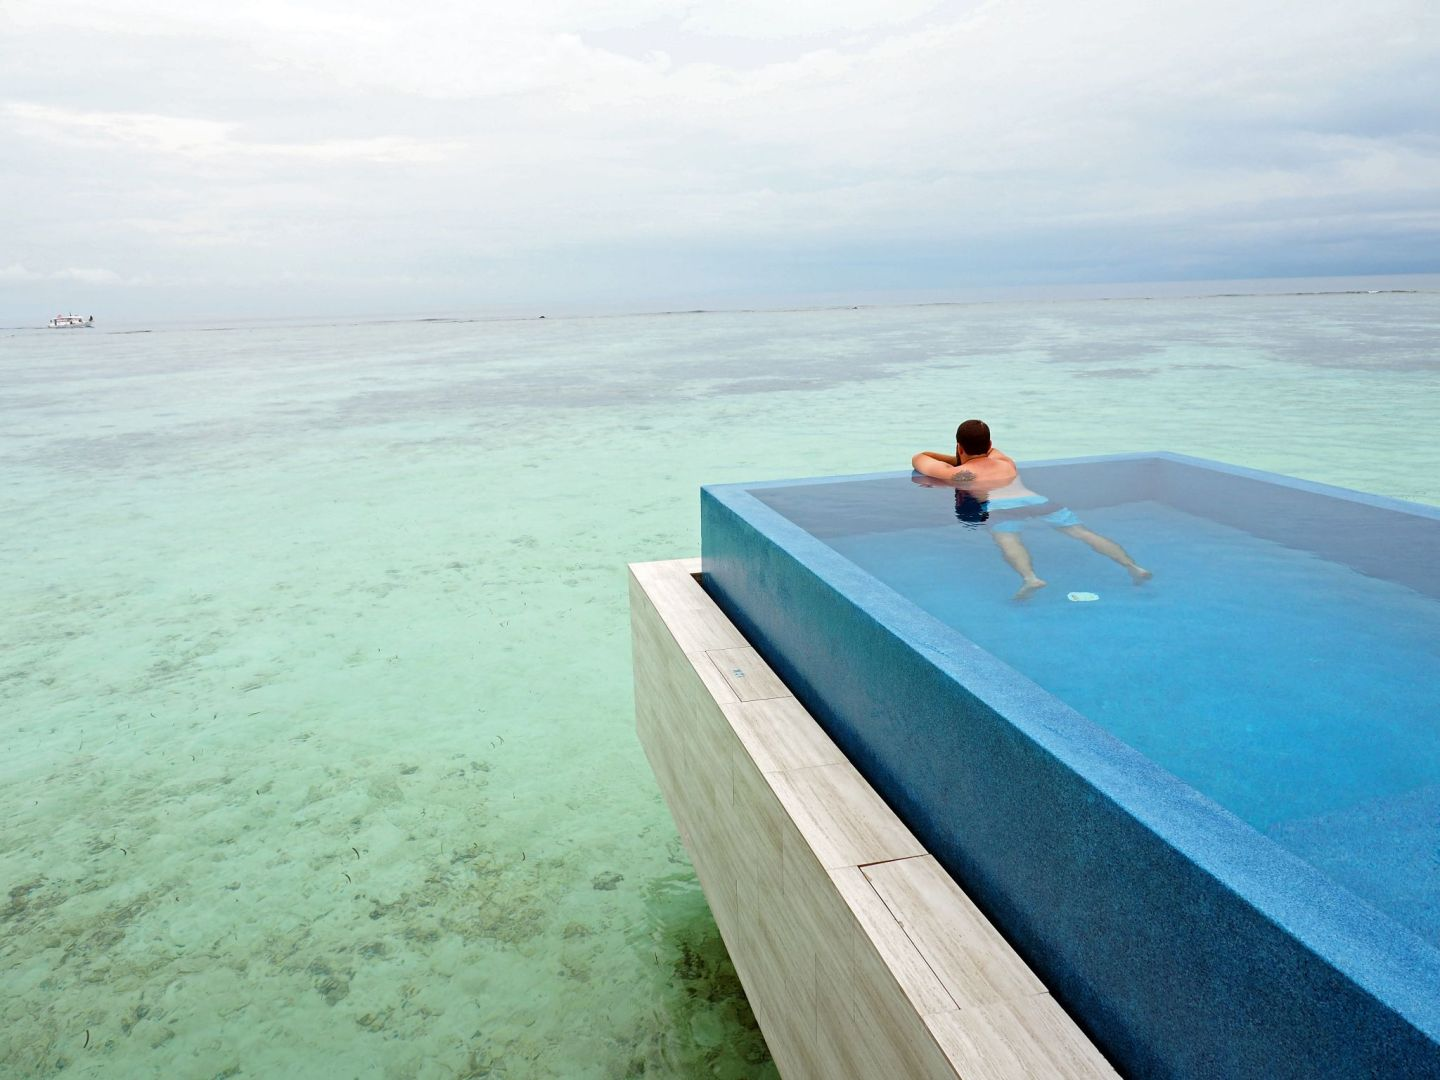 Swimming in infinity pool LUX Maldives